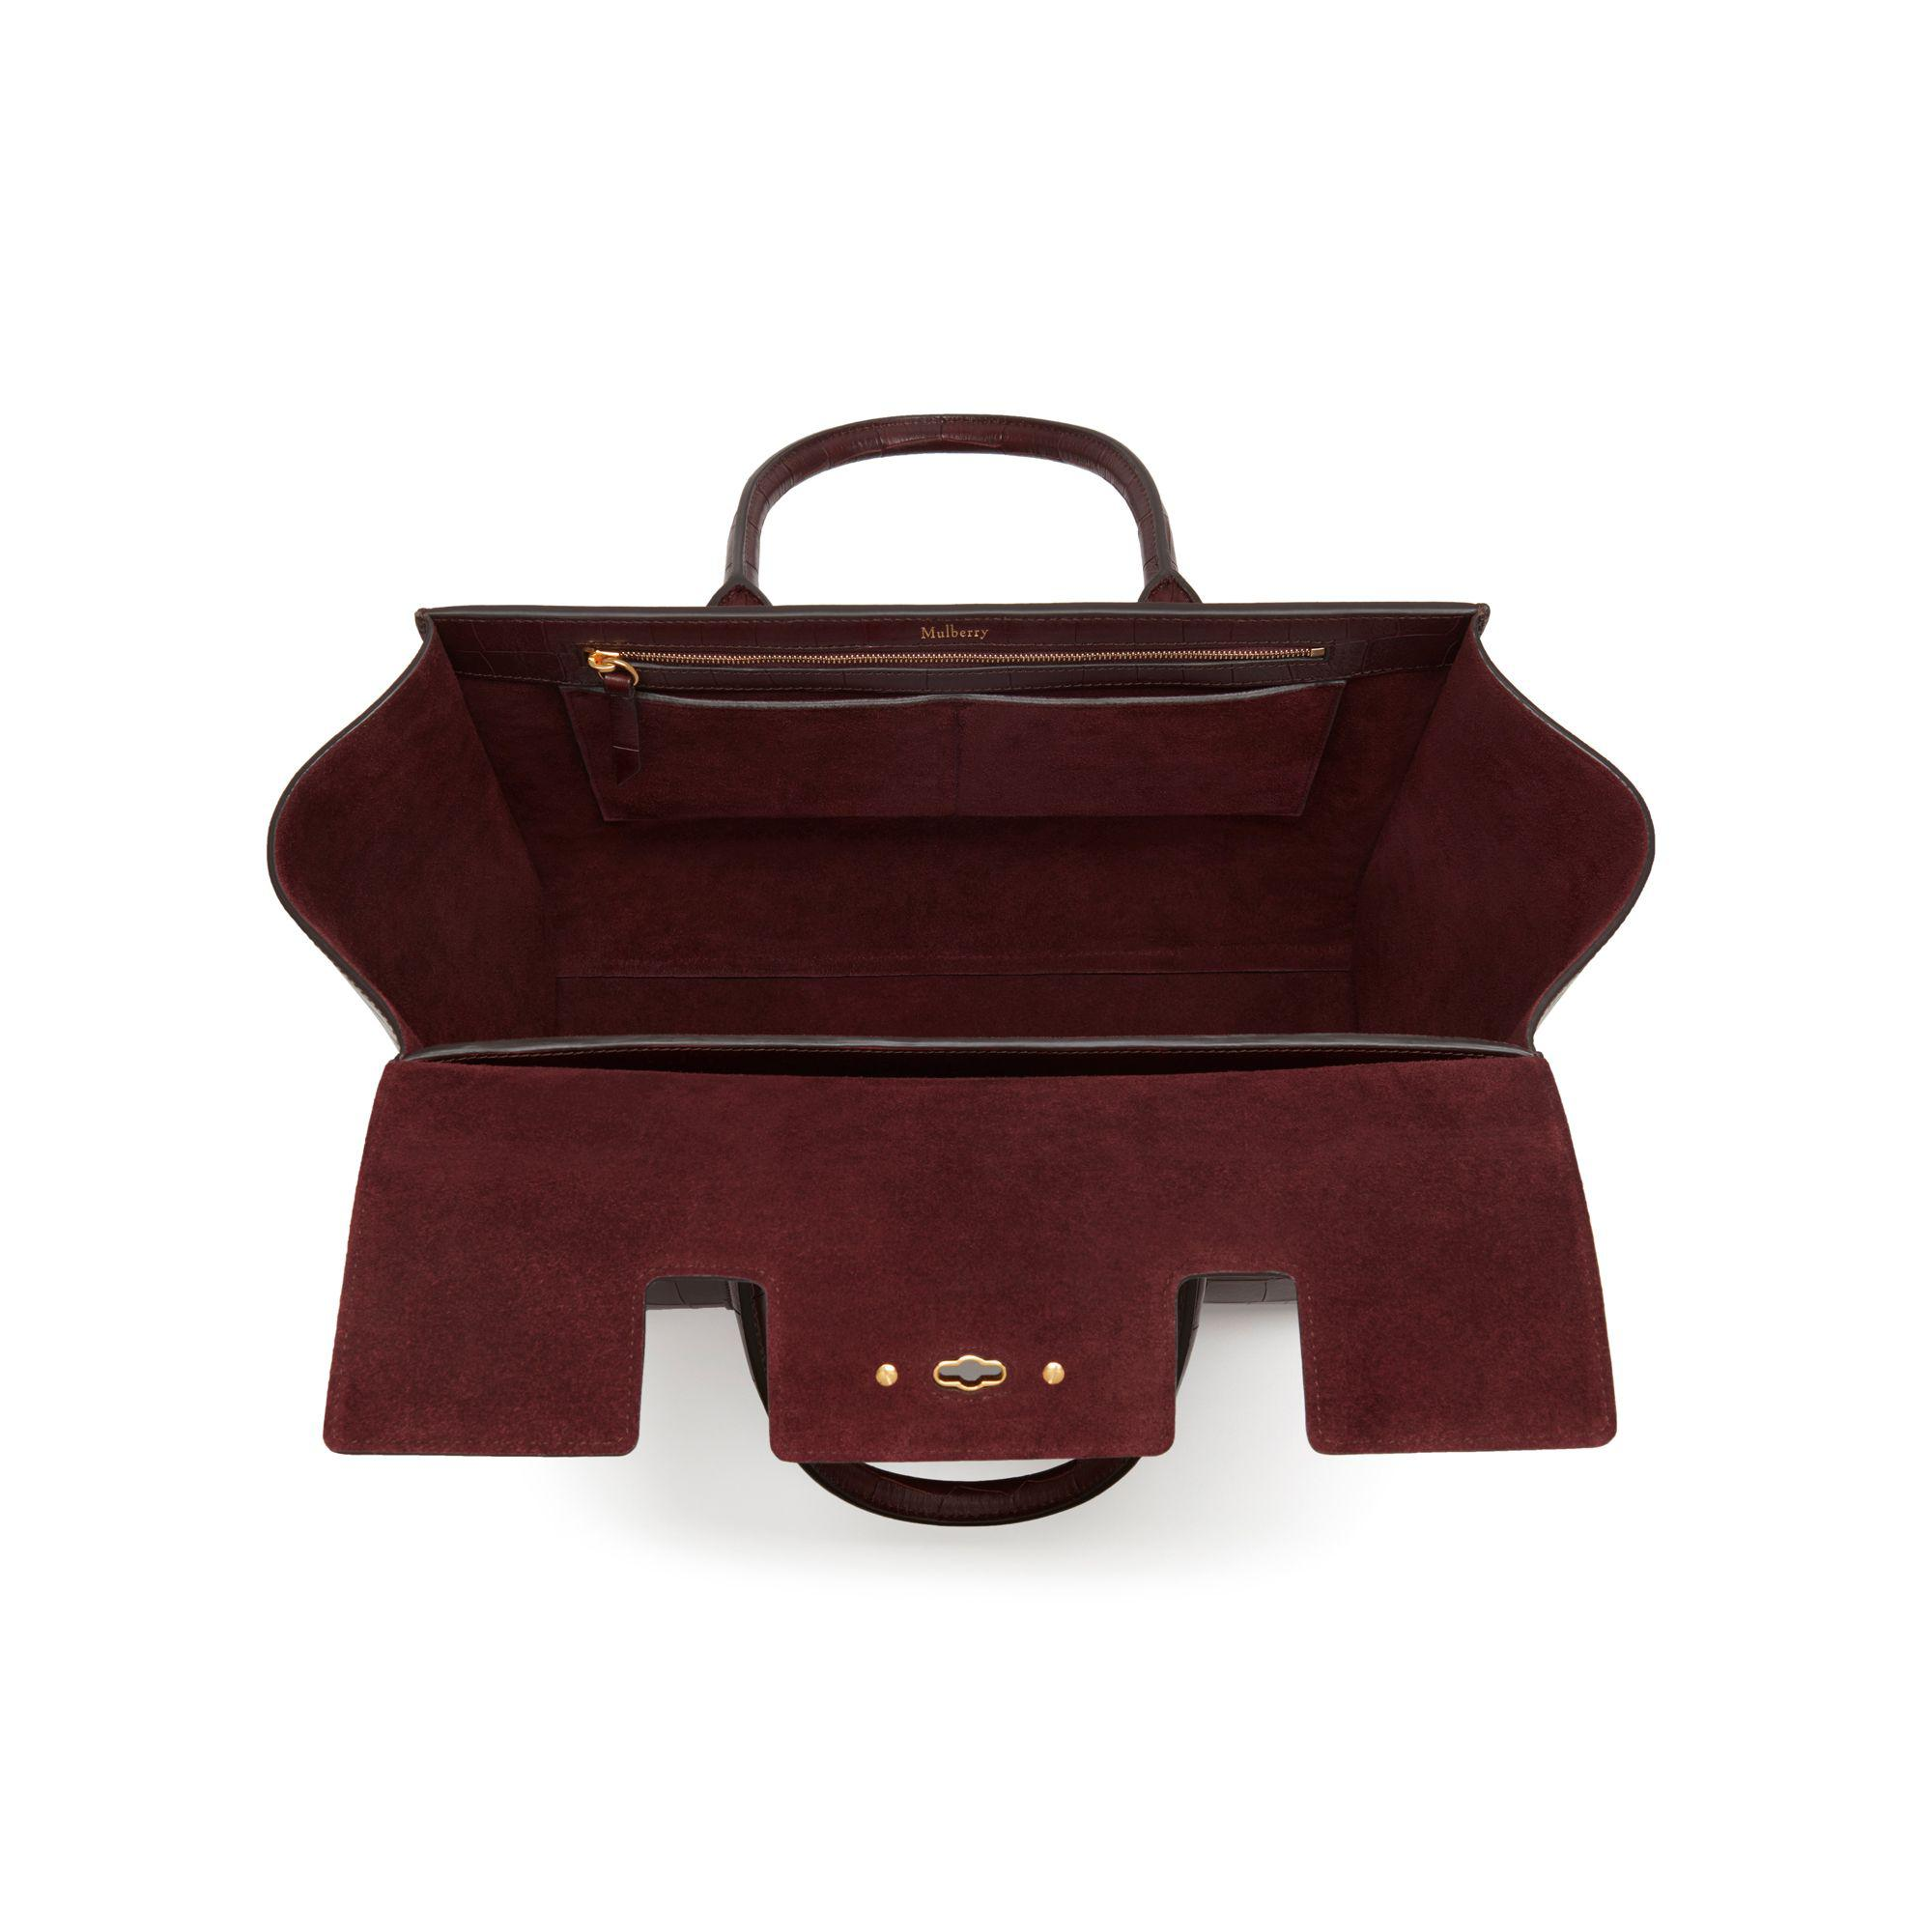 33f172af5b Mulberry Bayswater With Strap - Lyst